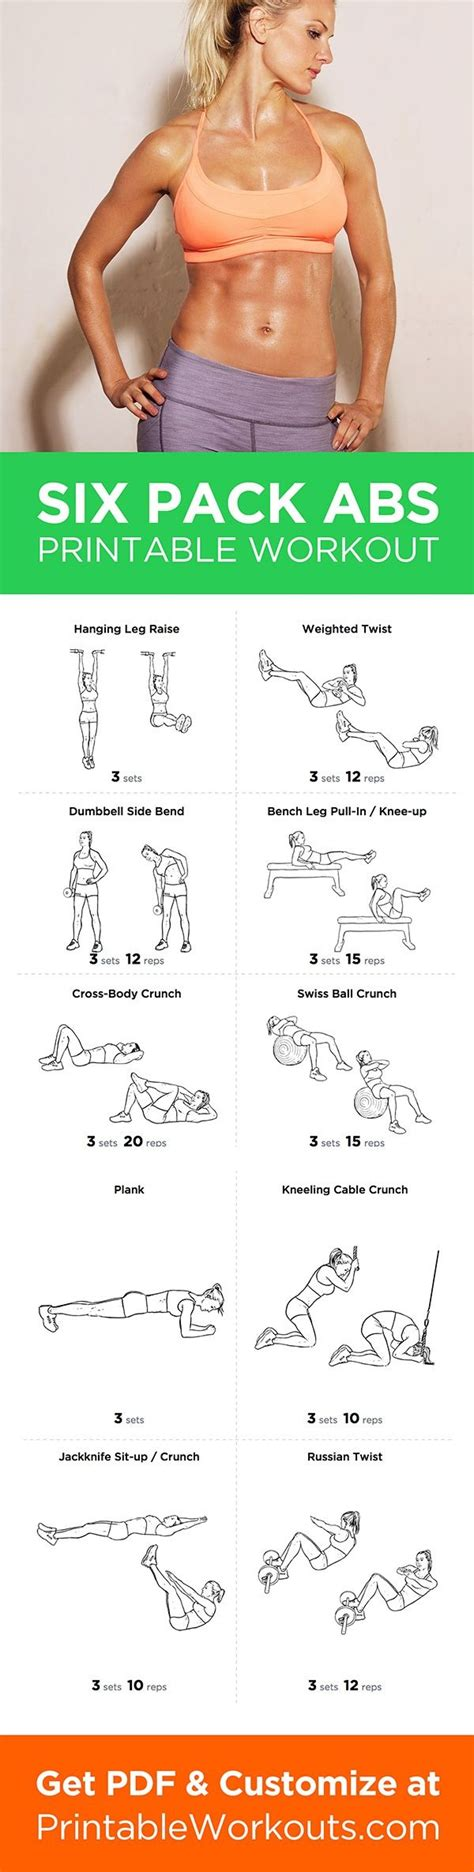 printable workout to customize and print six pack abs abdominal workout routine for and